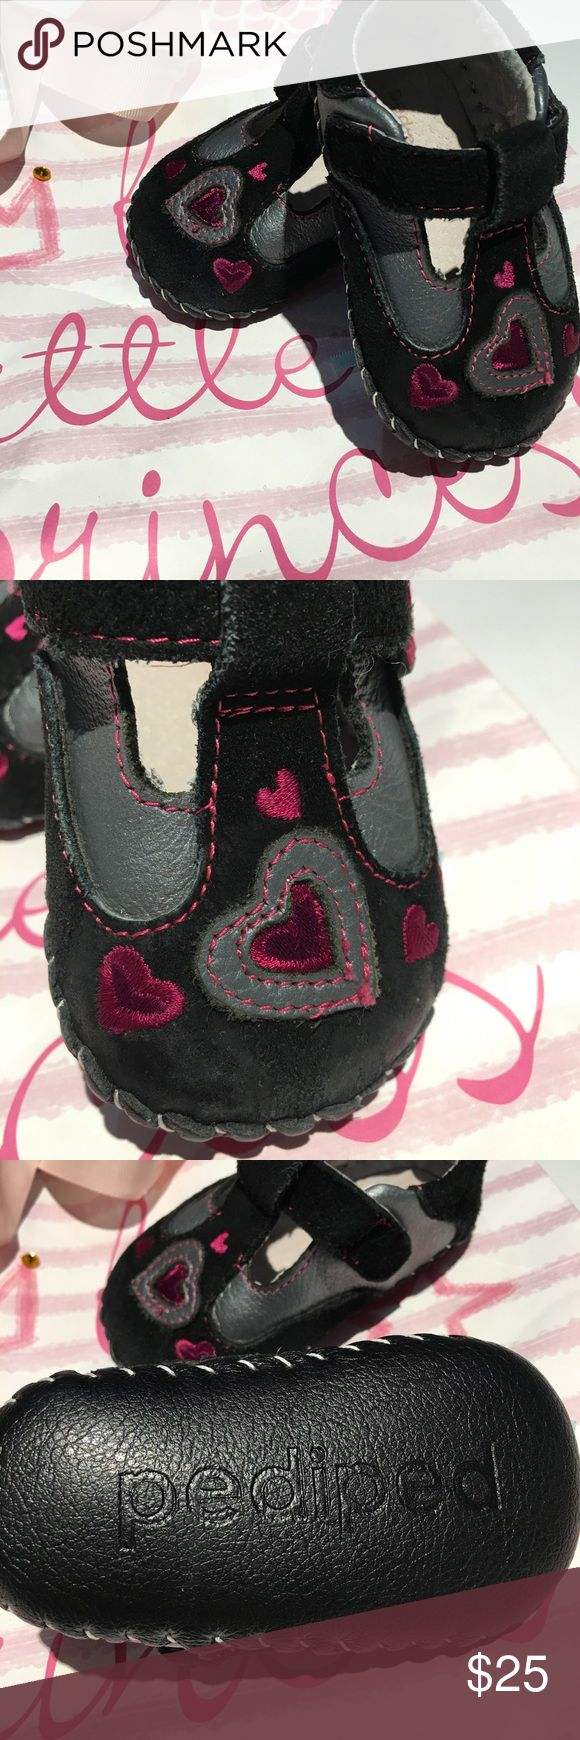 PEDIPED black heart Mary Jane crib shoes PEDIPED black heart Mary Jane crib shoes. Very comfortable, well made leather material. Some signs of wear, see pictures. Beautiful embroidered pink 💕 6-12 months.                                            Genuine leather upper Breathable leather lining All leather soft-sole with slip resistant diamond tread Mary Jane with a Velcro® closure Approved by the American Podiatric Medical Association for promoting healthy foot development pediped Shoes…